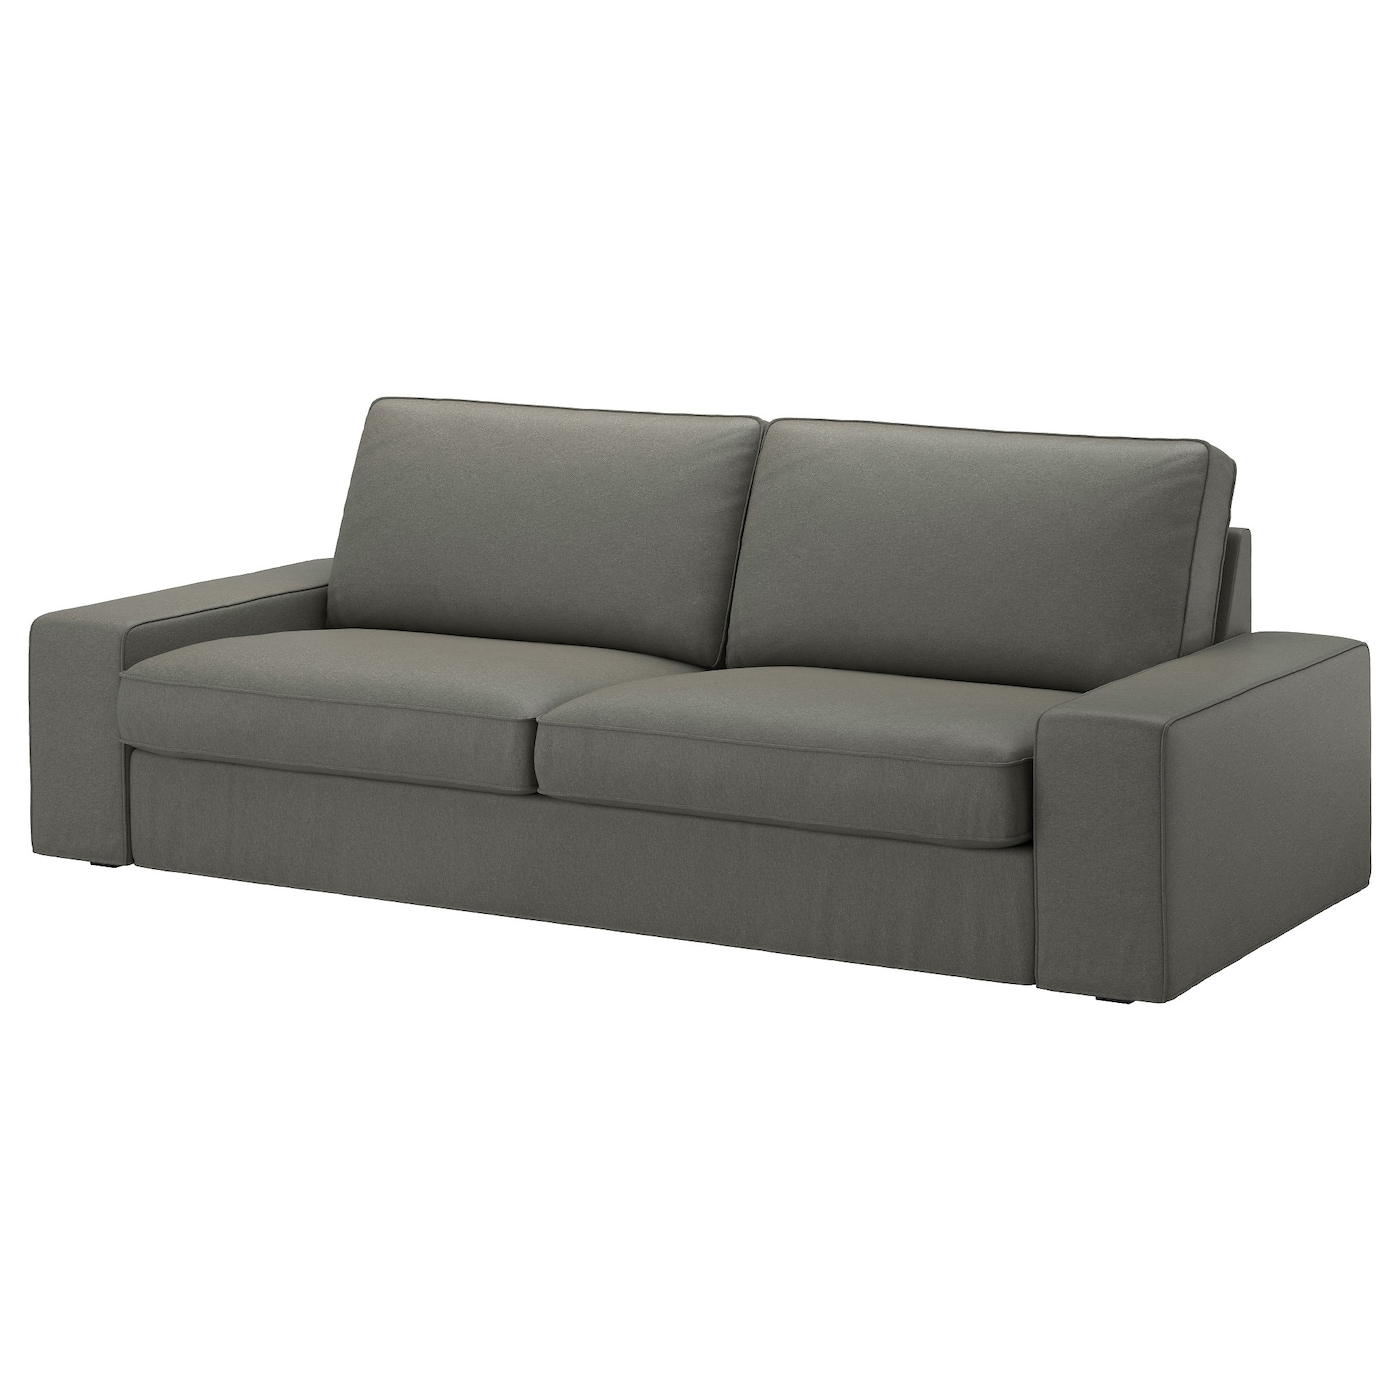 kivik cover three seat sofa borred grey green ikea. Black Bedroom Furniture Sets. Home Design Ideas